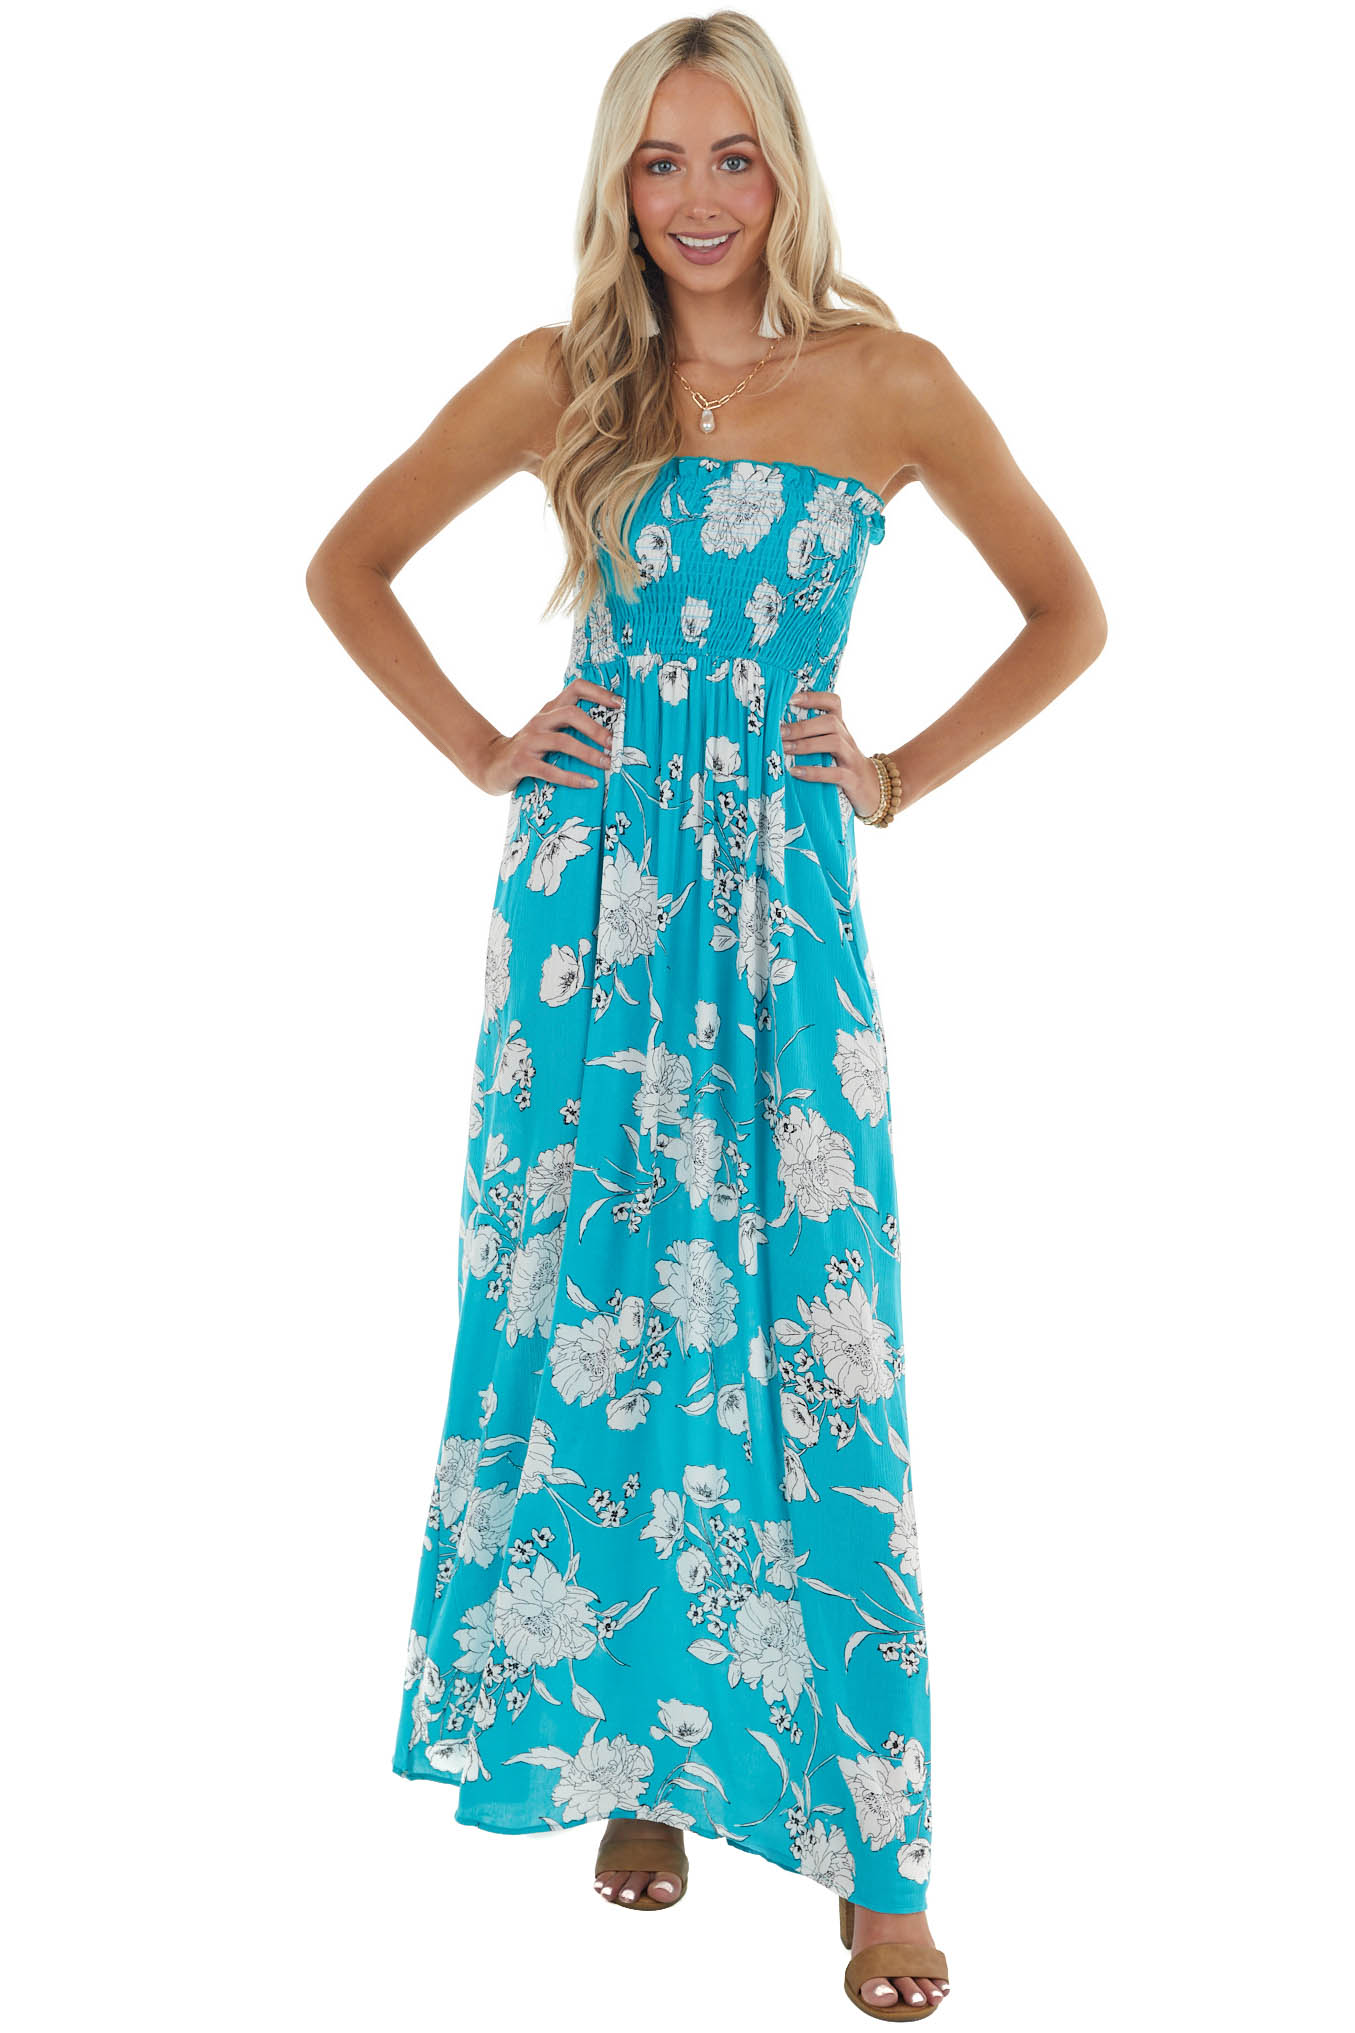 Teal Blue Floral Print Maxi Dress with Smocked Bodice